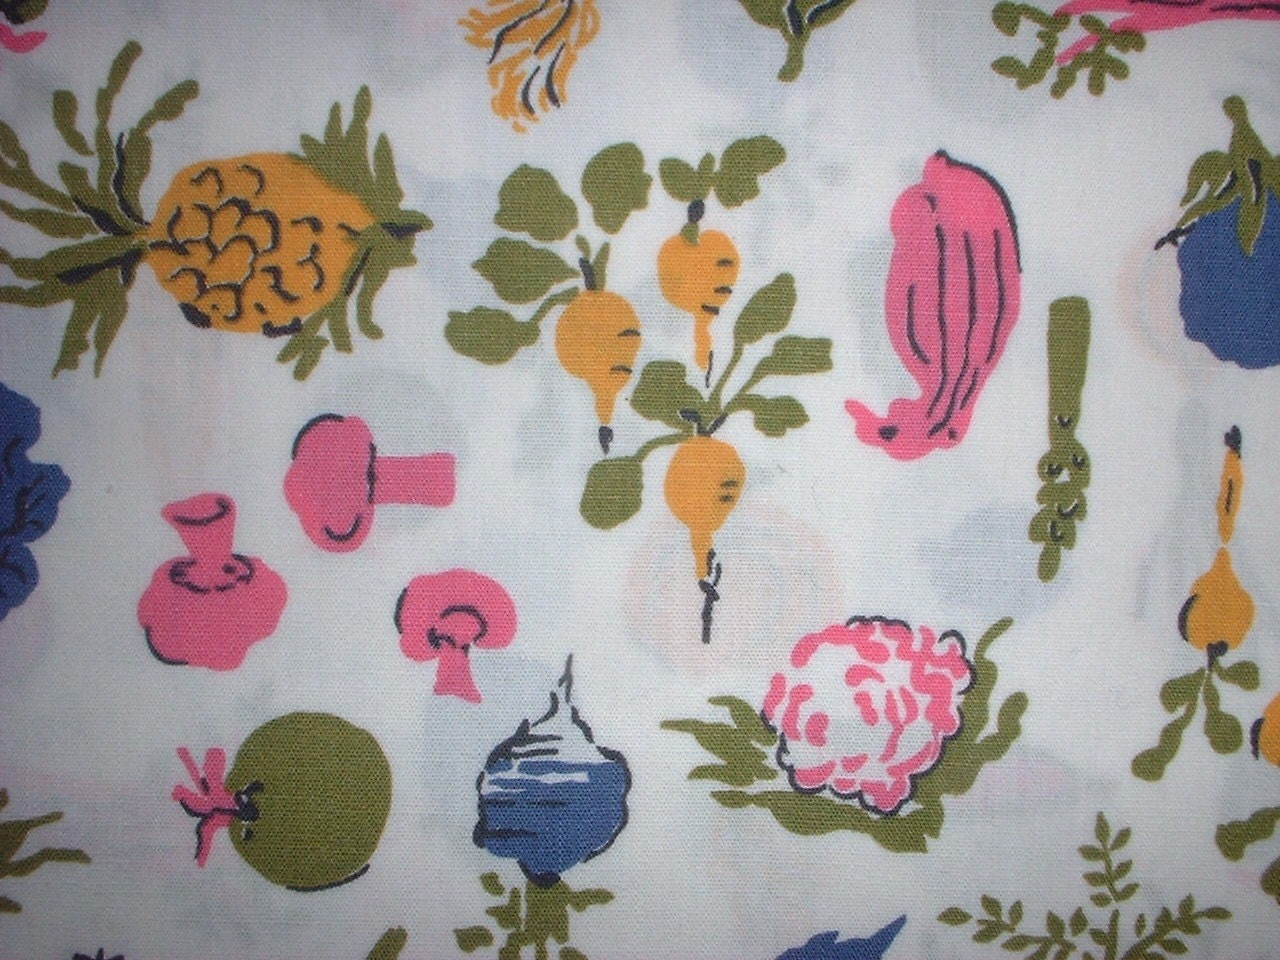 Vintage 60s Kitchen Fabric... Little Mushrooms Cute Kitchen Veggies Turnips...